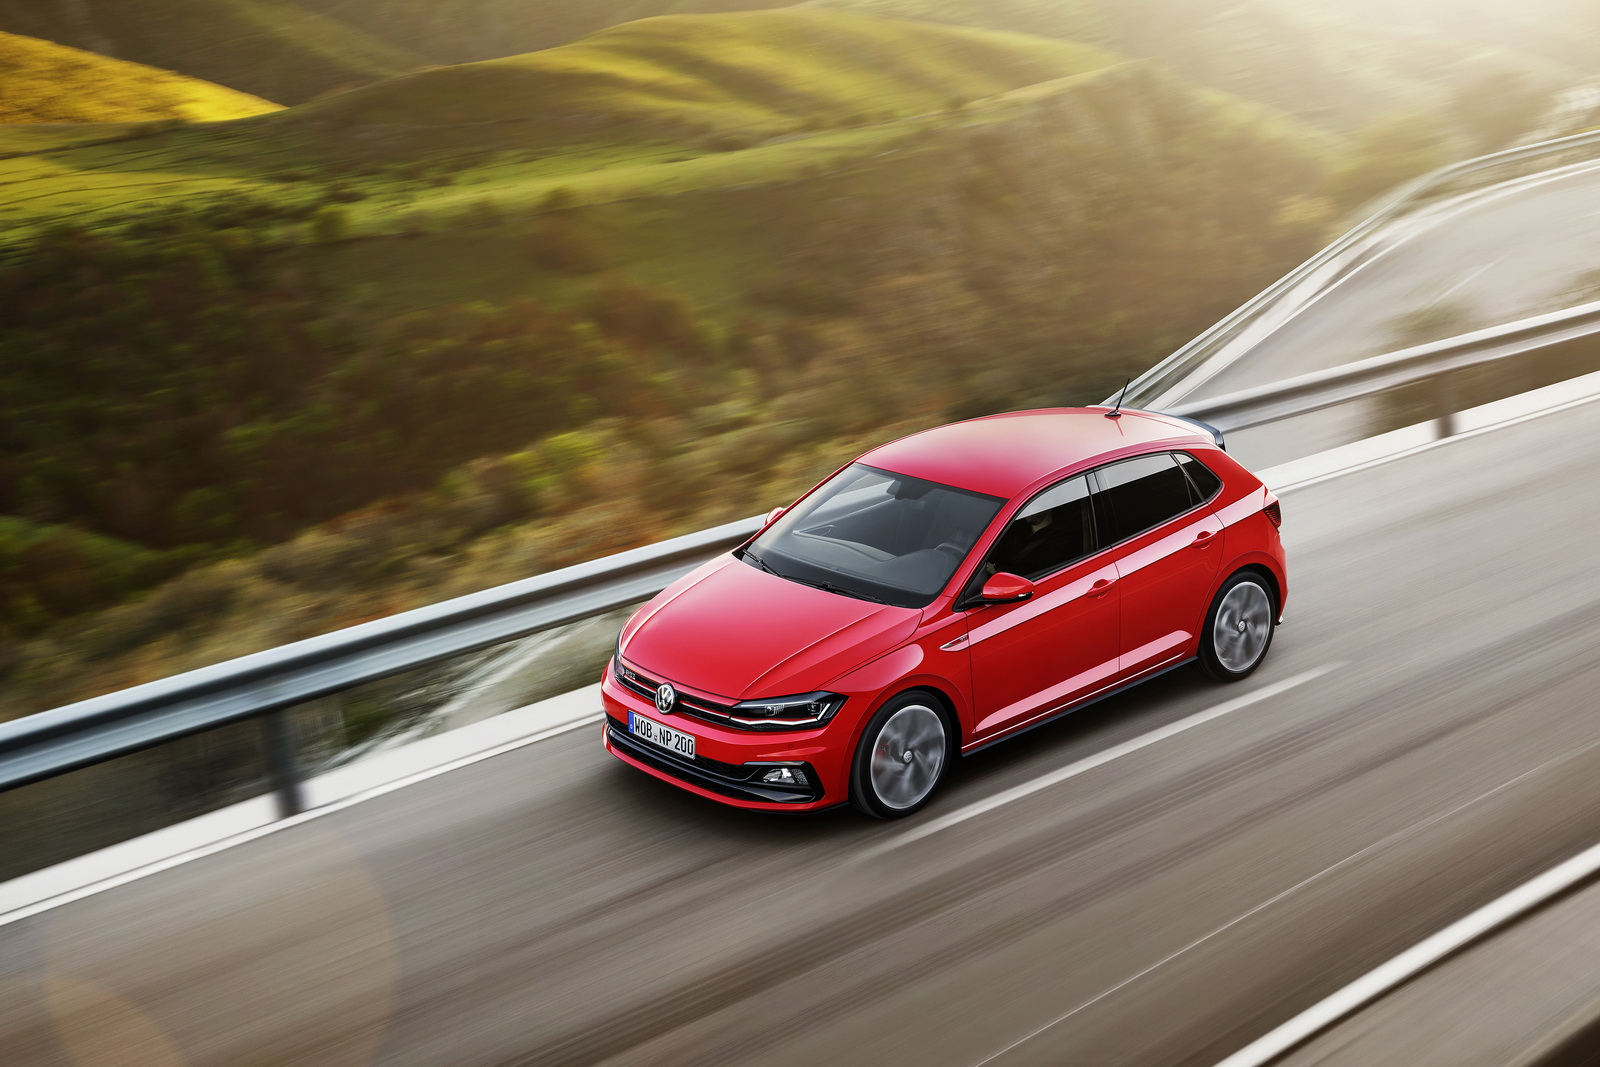 Volkswagen Polo and Polo GTI 2018 (41)